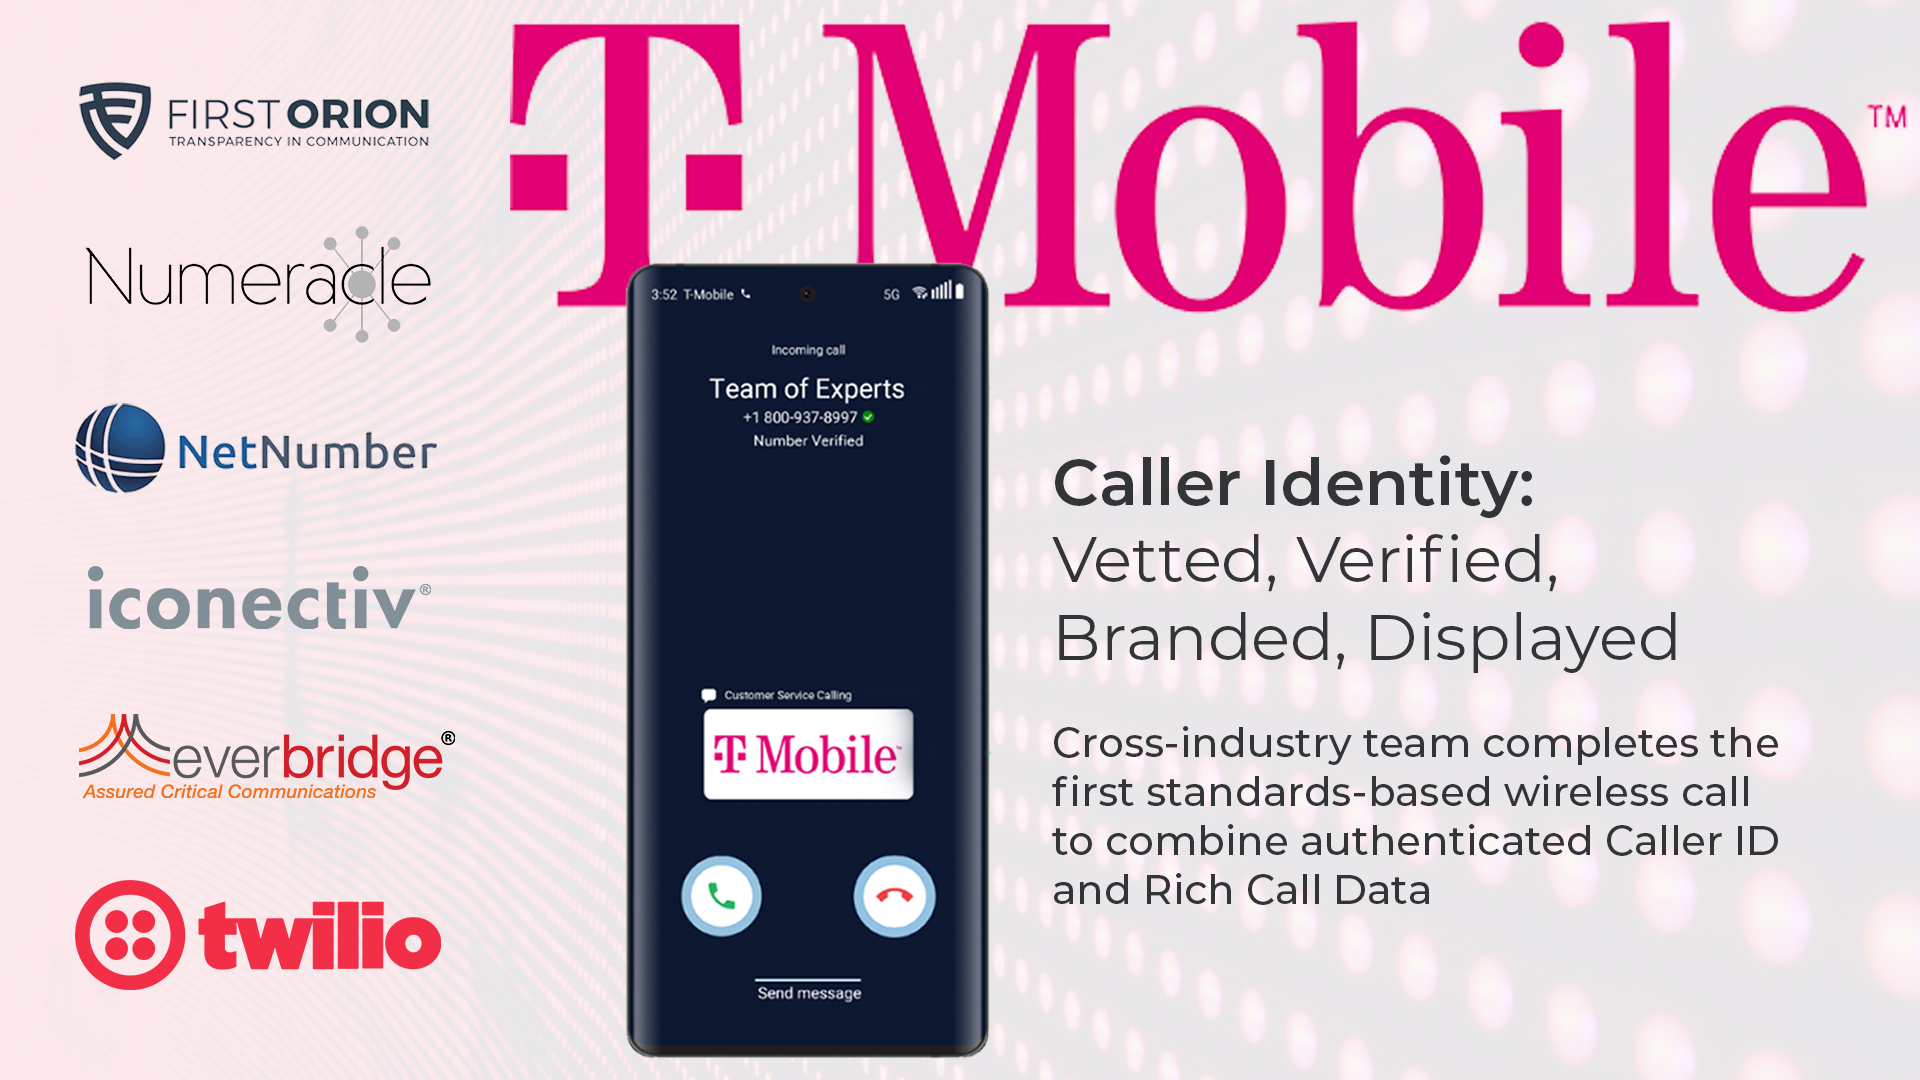 Caller Identity: Vetted, Verified, Branded, Displayed